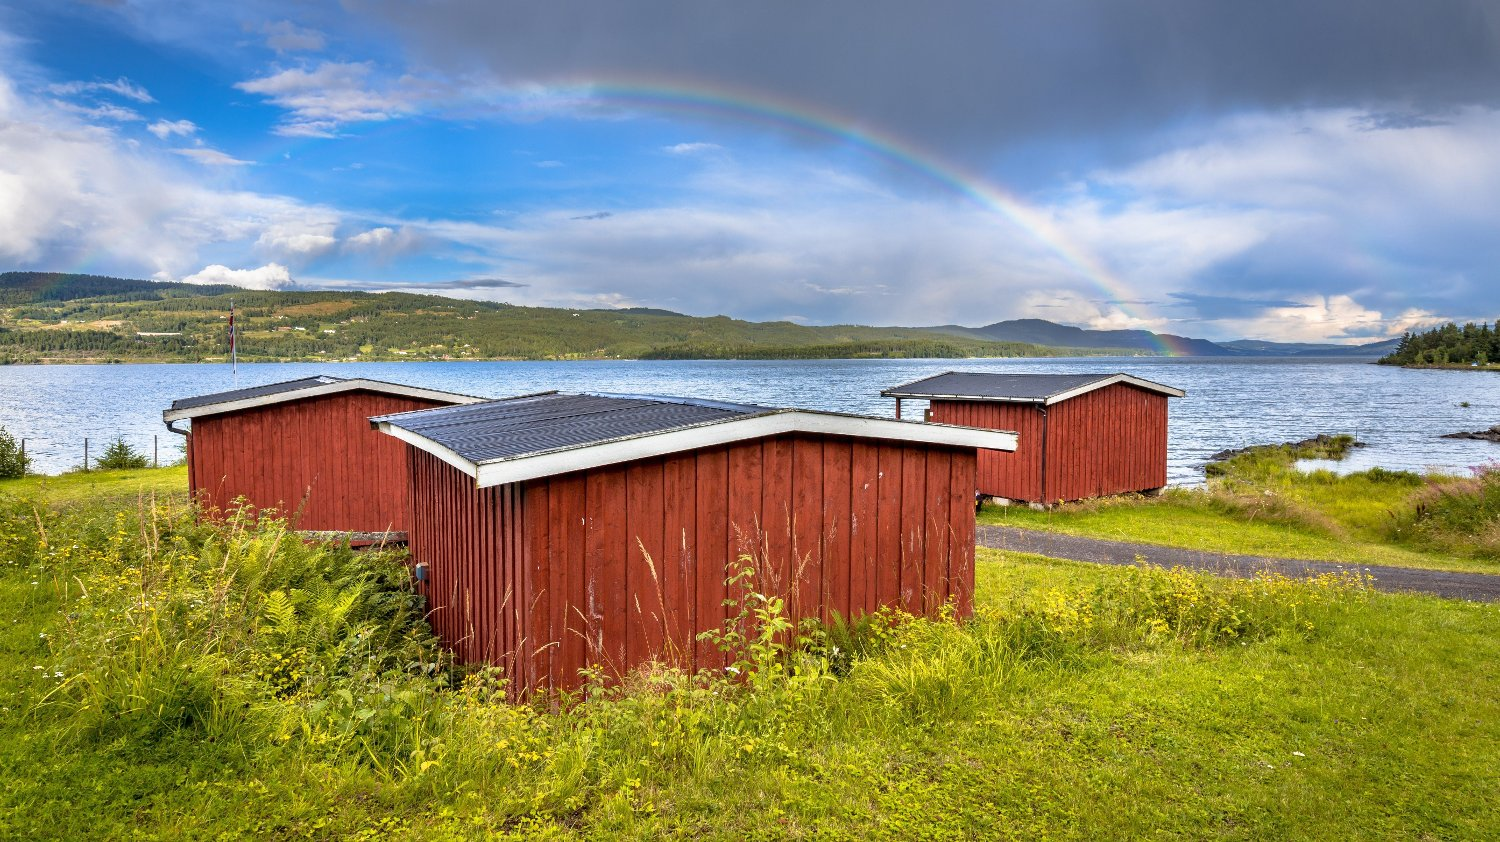 Idyllic red wooden cabins overseeing lake near Lillehammer, Norway. Under a rainbow